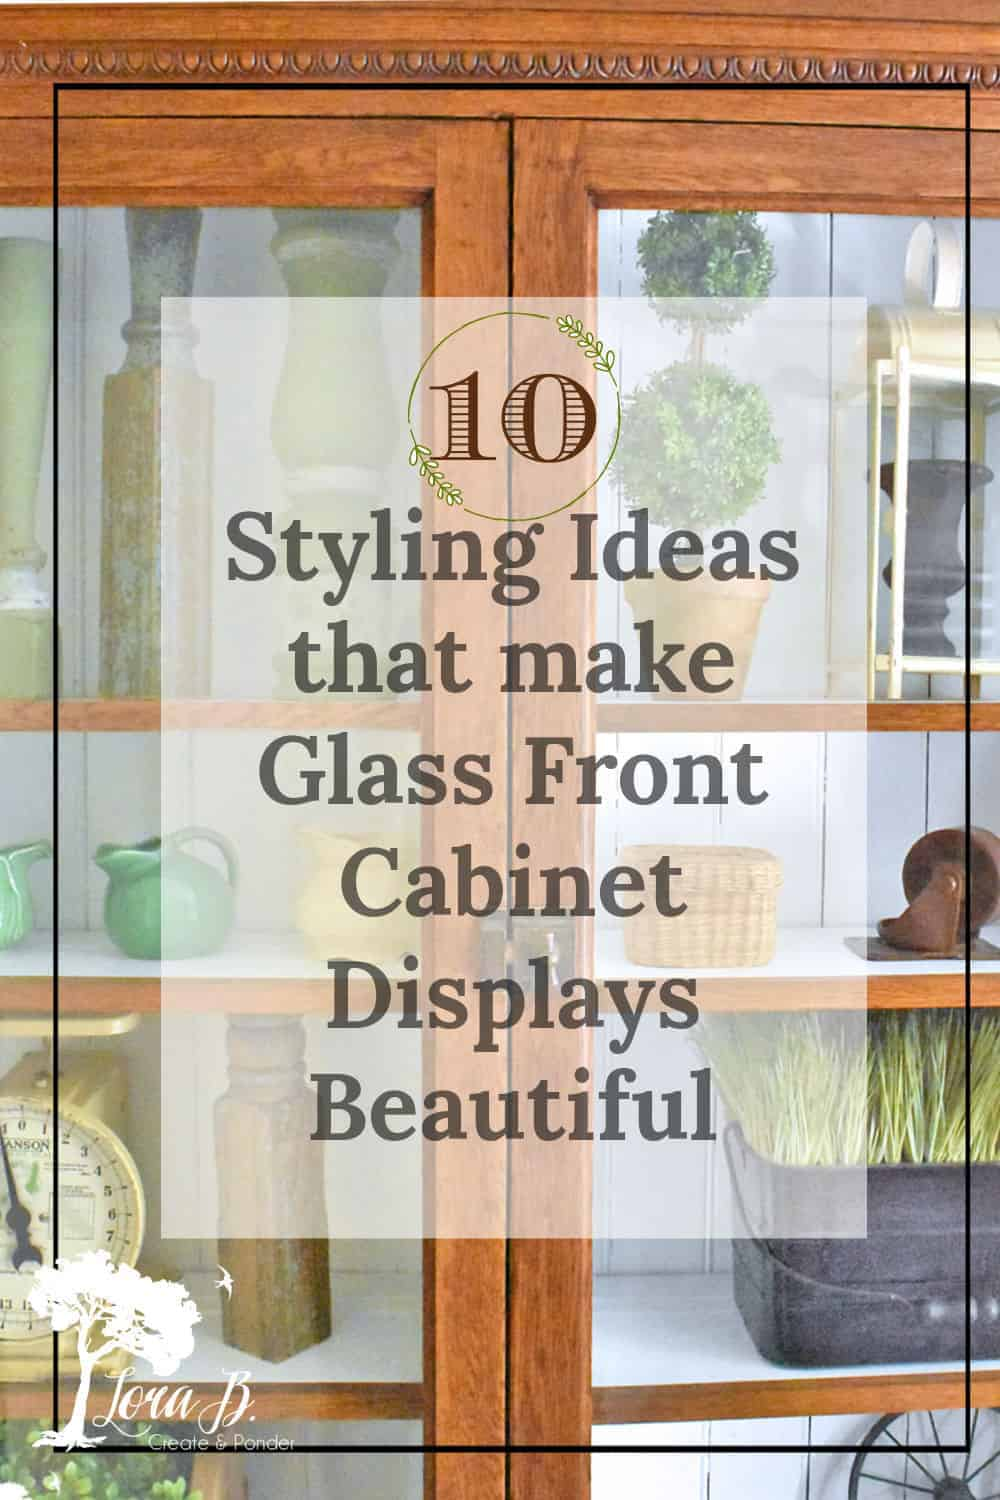 10 Styling Ideas That Make Glass Front Cabinet Displays Beautiful